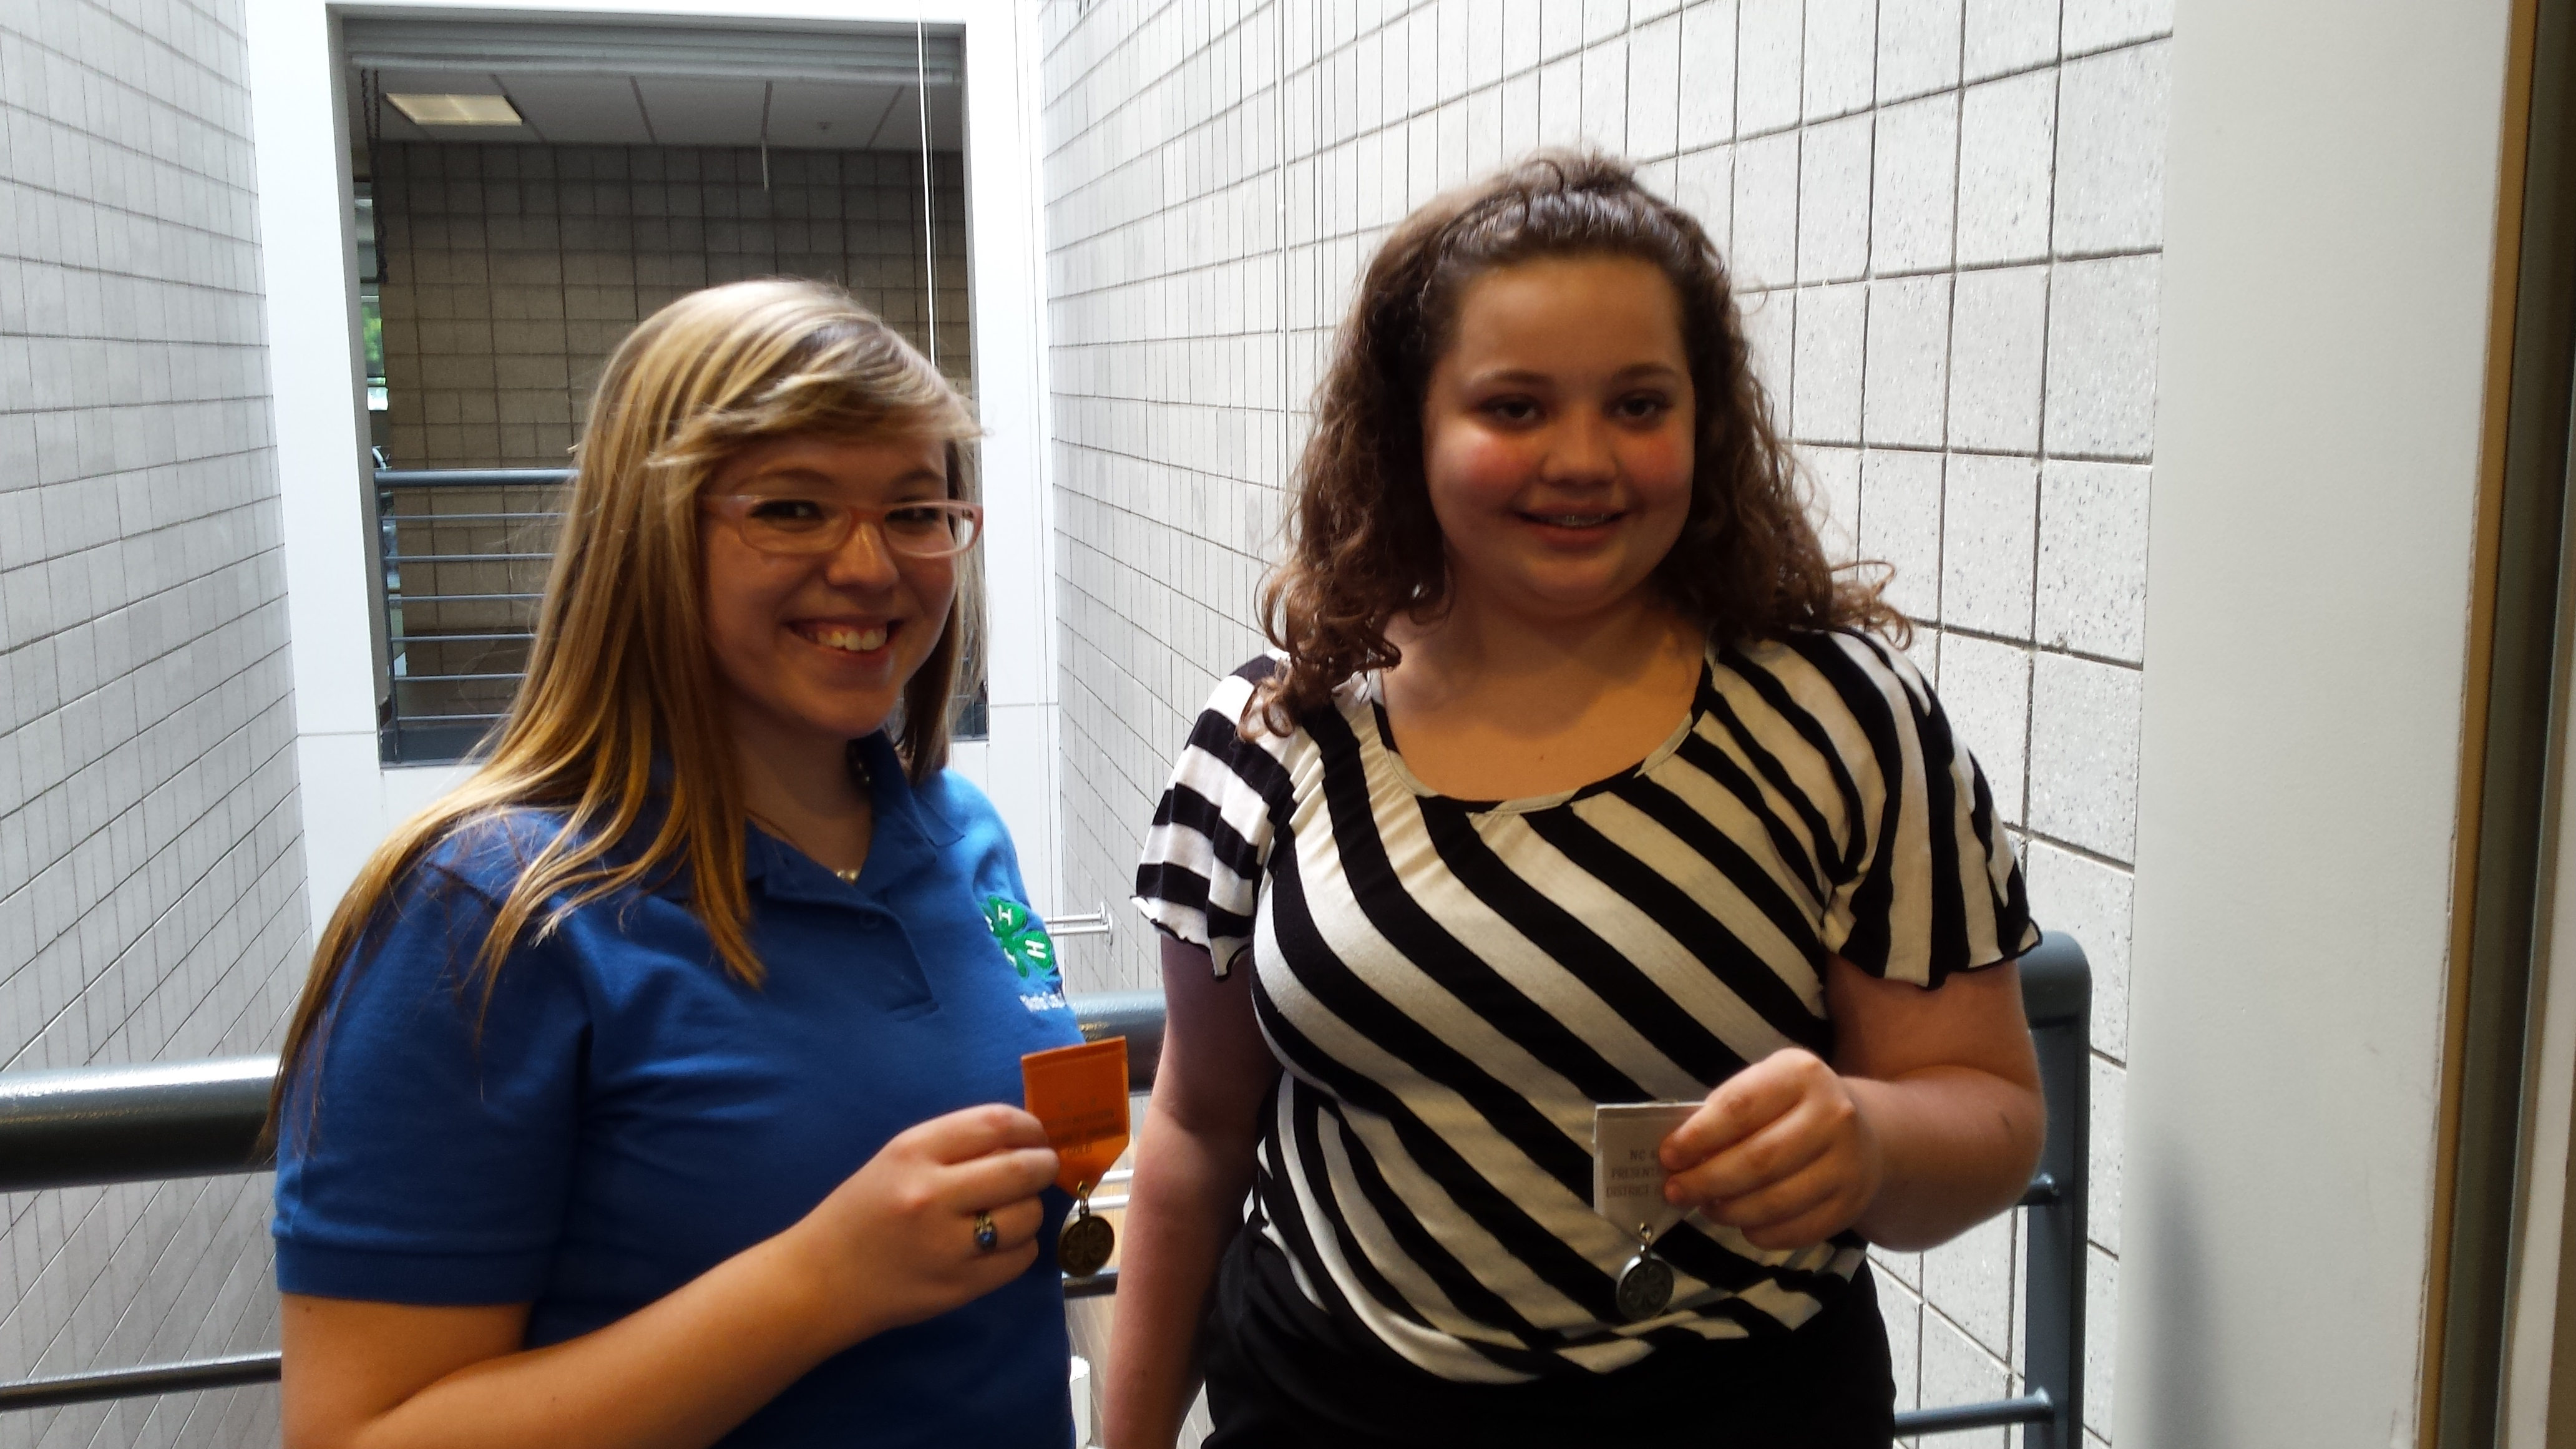 Sarah Thomas (left) and Katelyn Batchelor (right) win Gold and Silver, respectively, at the 4-H North Central District Activity Day in Greensboro.